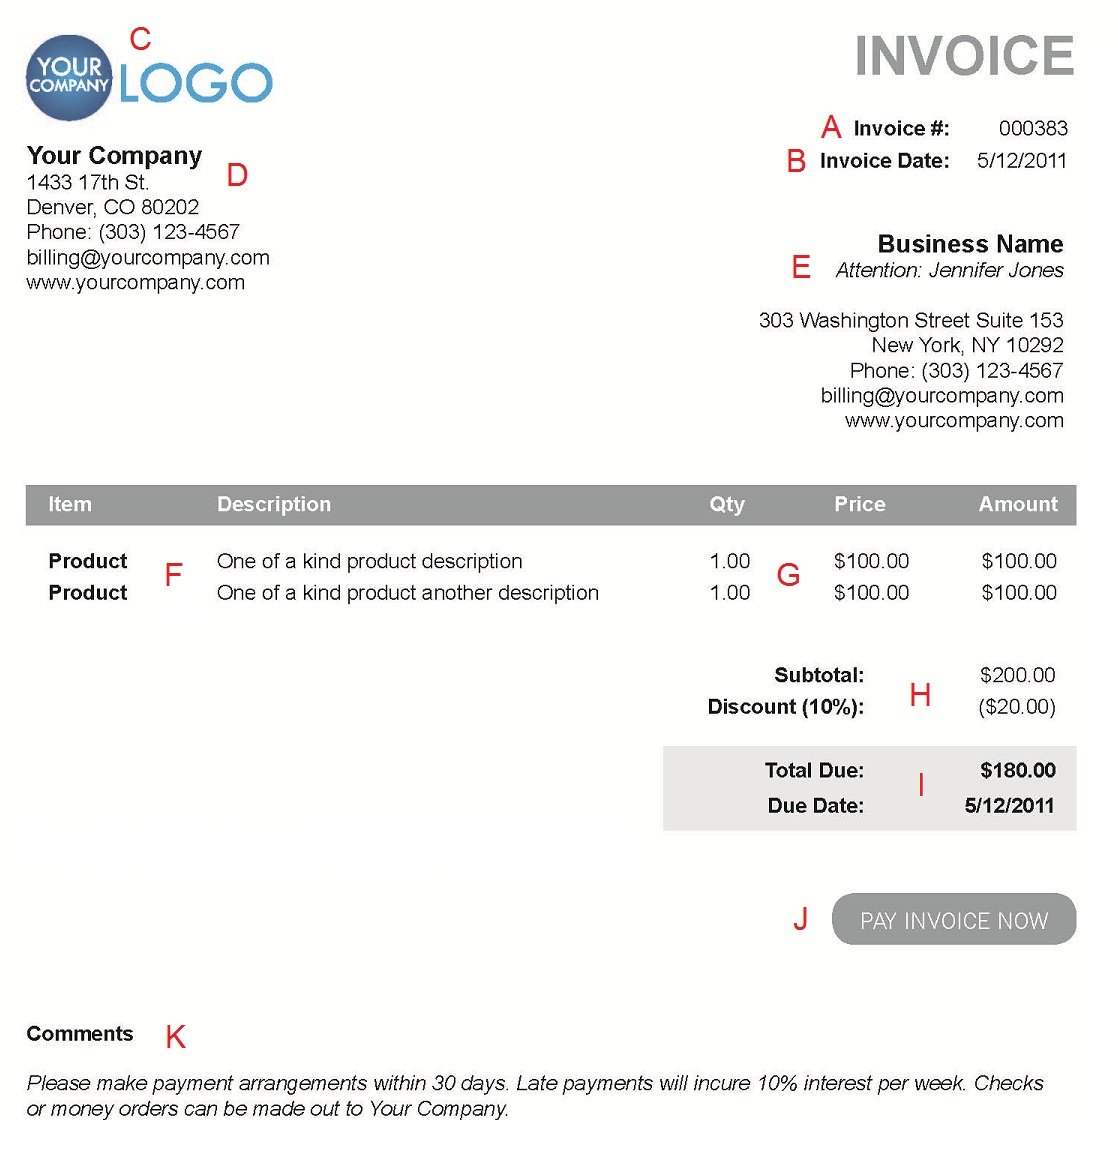 Ultrablogus  Nice The  Different Sections Of An Electronic Payment Invoice With Handsome A  With Amazing Purchase Orders And Invoices Also Invoice Creator Free In Addition Ncr Invoice Pads And Quicken Invoices As Well As Word Invoice Template Mac Additionally Invoice For Services Rendered Template From Paysimplecom With Ultrablogus  Handsome The  Different Sections Of An Electronic Payment Invoice With Amazing A  And Nice Purchase Orders And Invoices Also Invoice Creator Free In Addition Ncr Invoice Pads From Paysimplecom